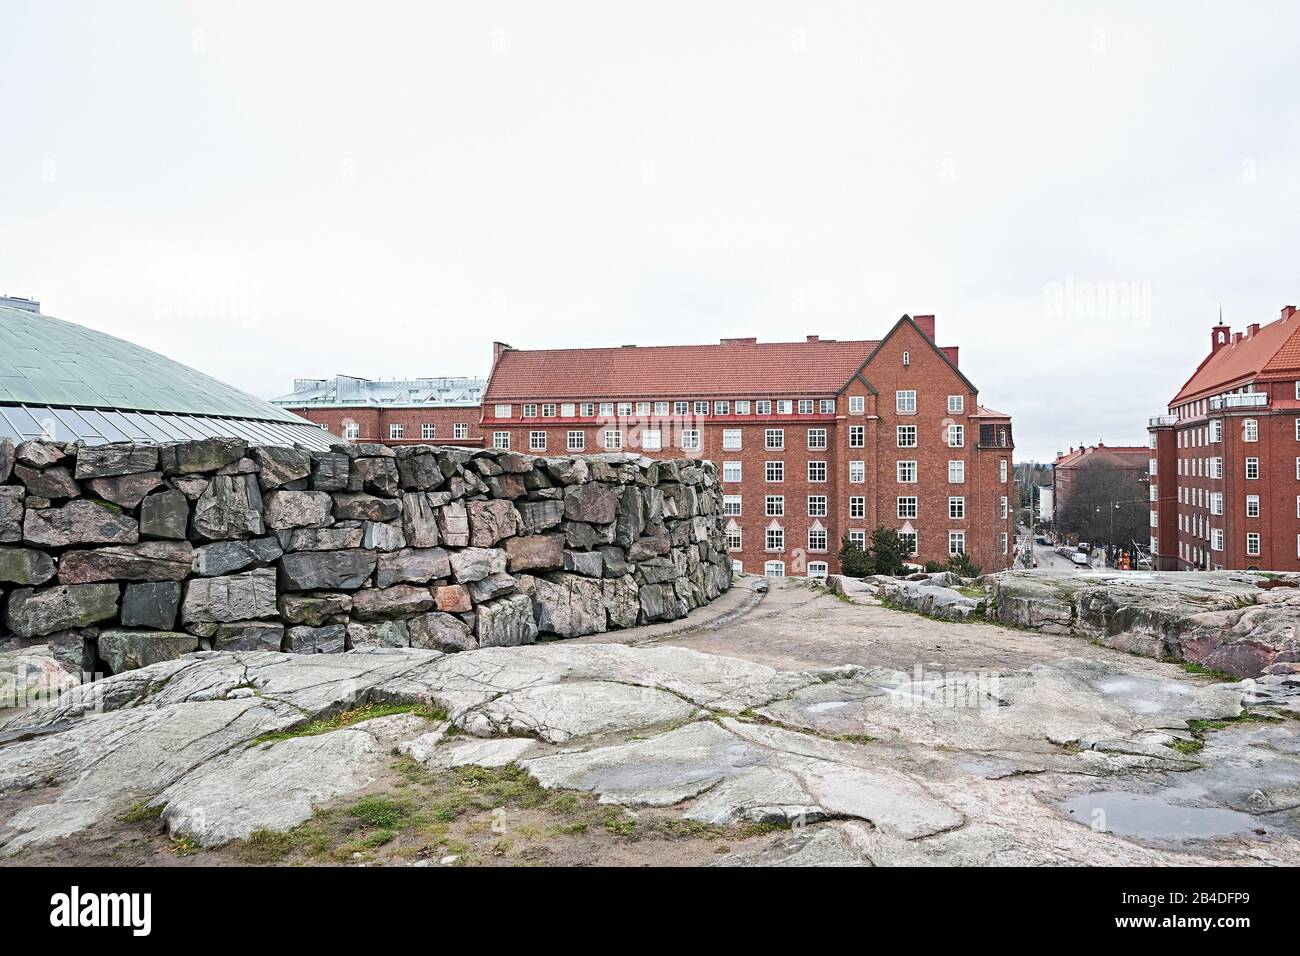 Exterior shot of the Temppeliaukio church in Helsinki, Finland Stock Photo